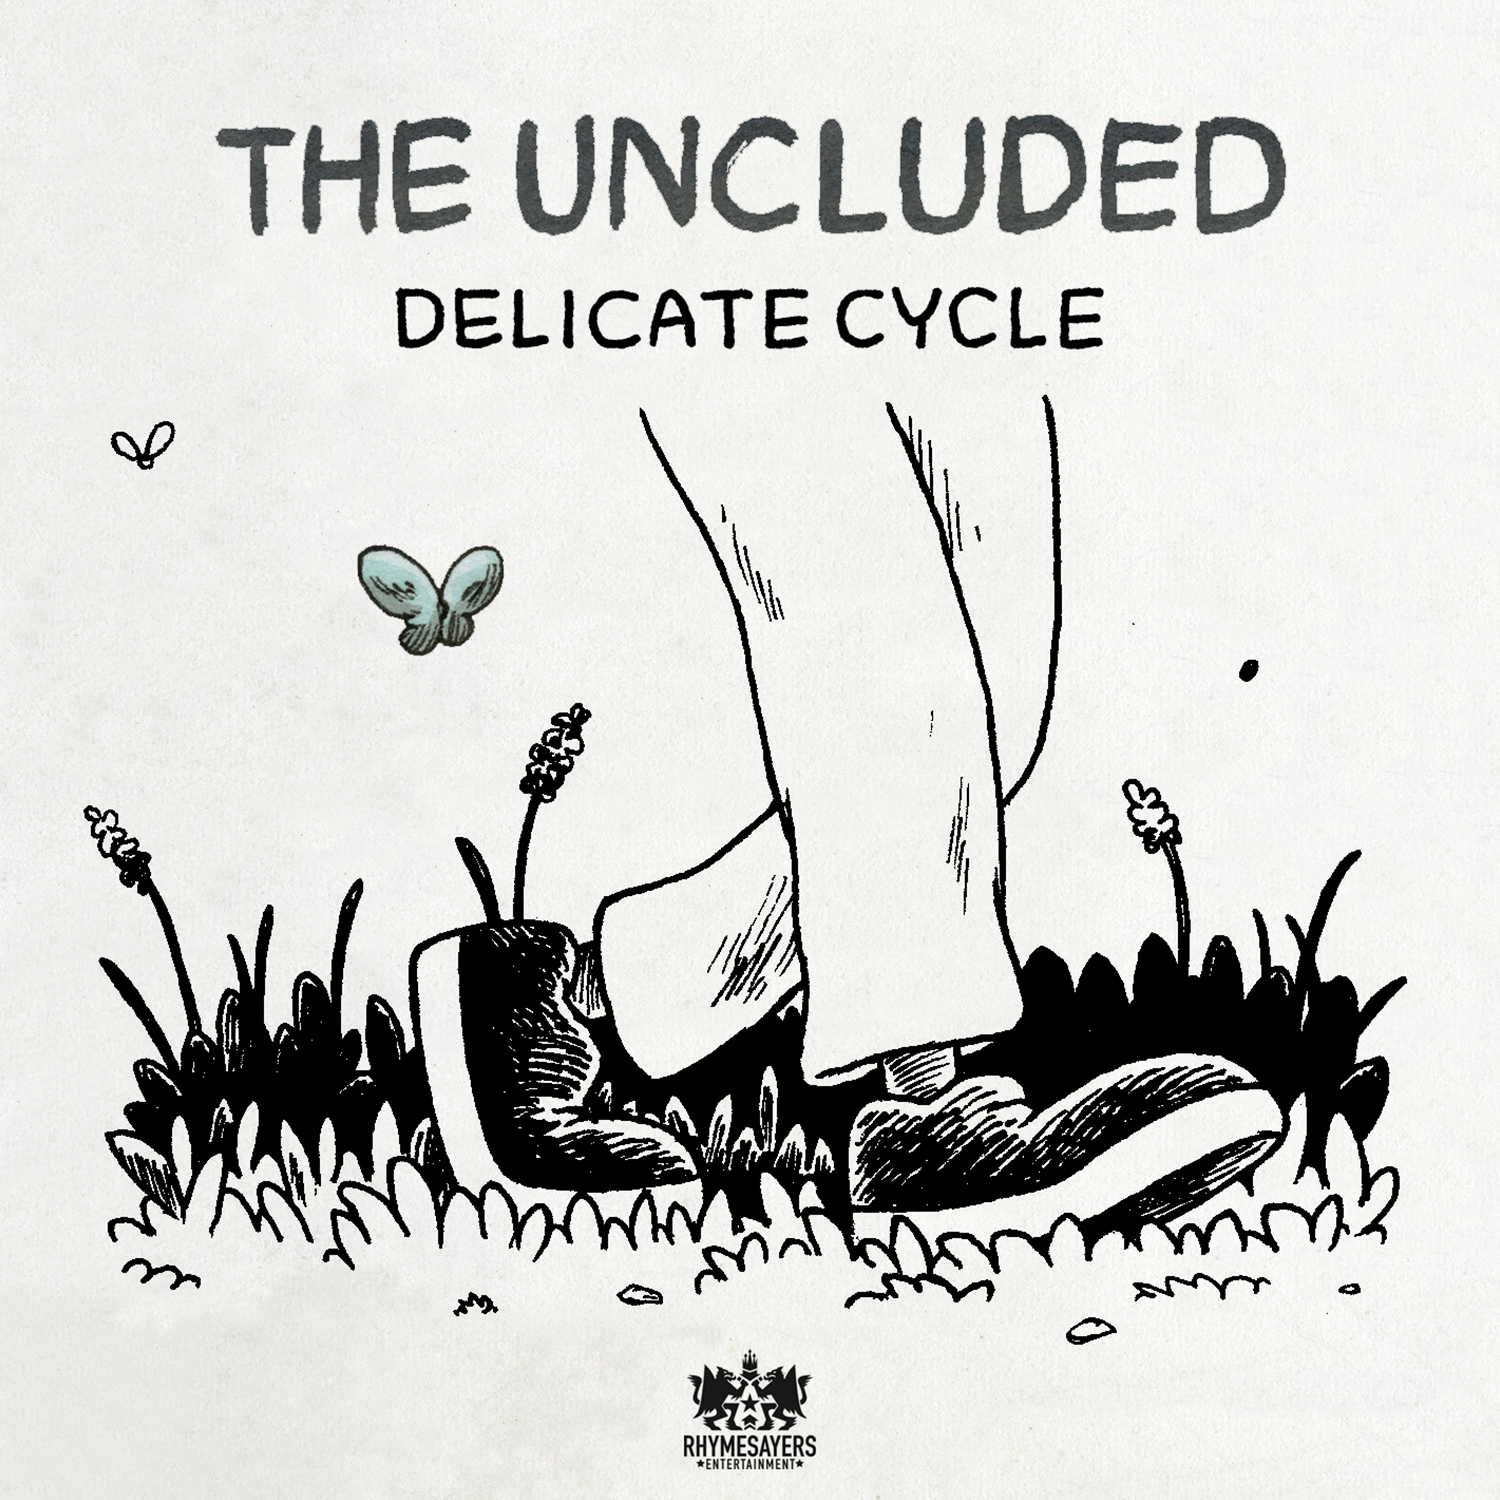 The Uncluded Delicate Cycle